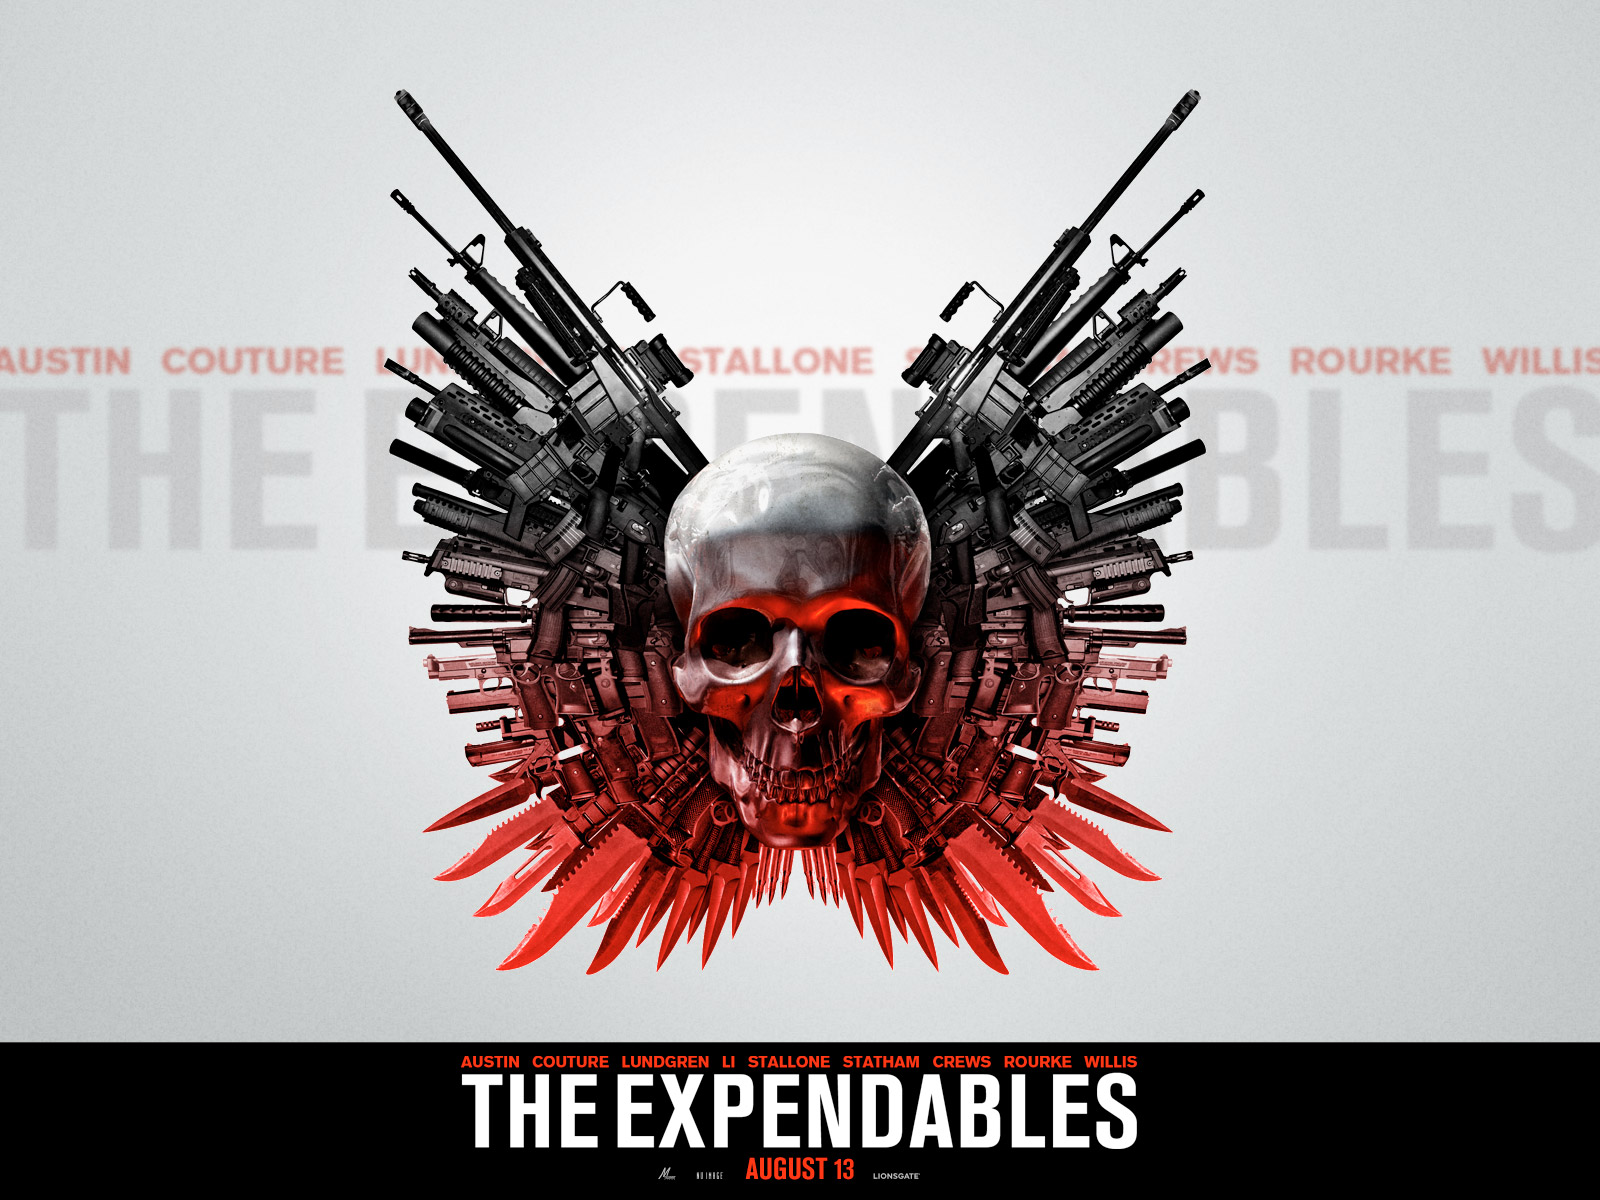 http://2.bp.blogspot.com/_nD_YgZuOadA/TIvo-GzMTXI/AAAAAAAAAXo/MngnLAi87Oc/s1600/The_Expendables_Wallpaper_2_1280.jpg